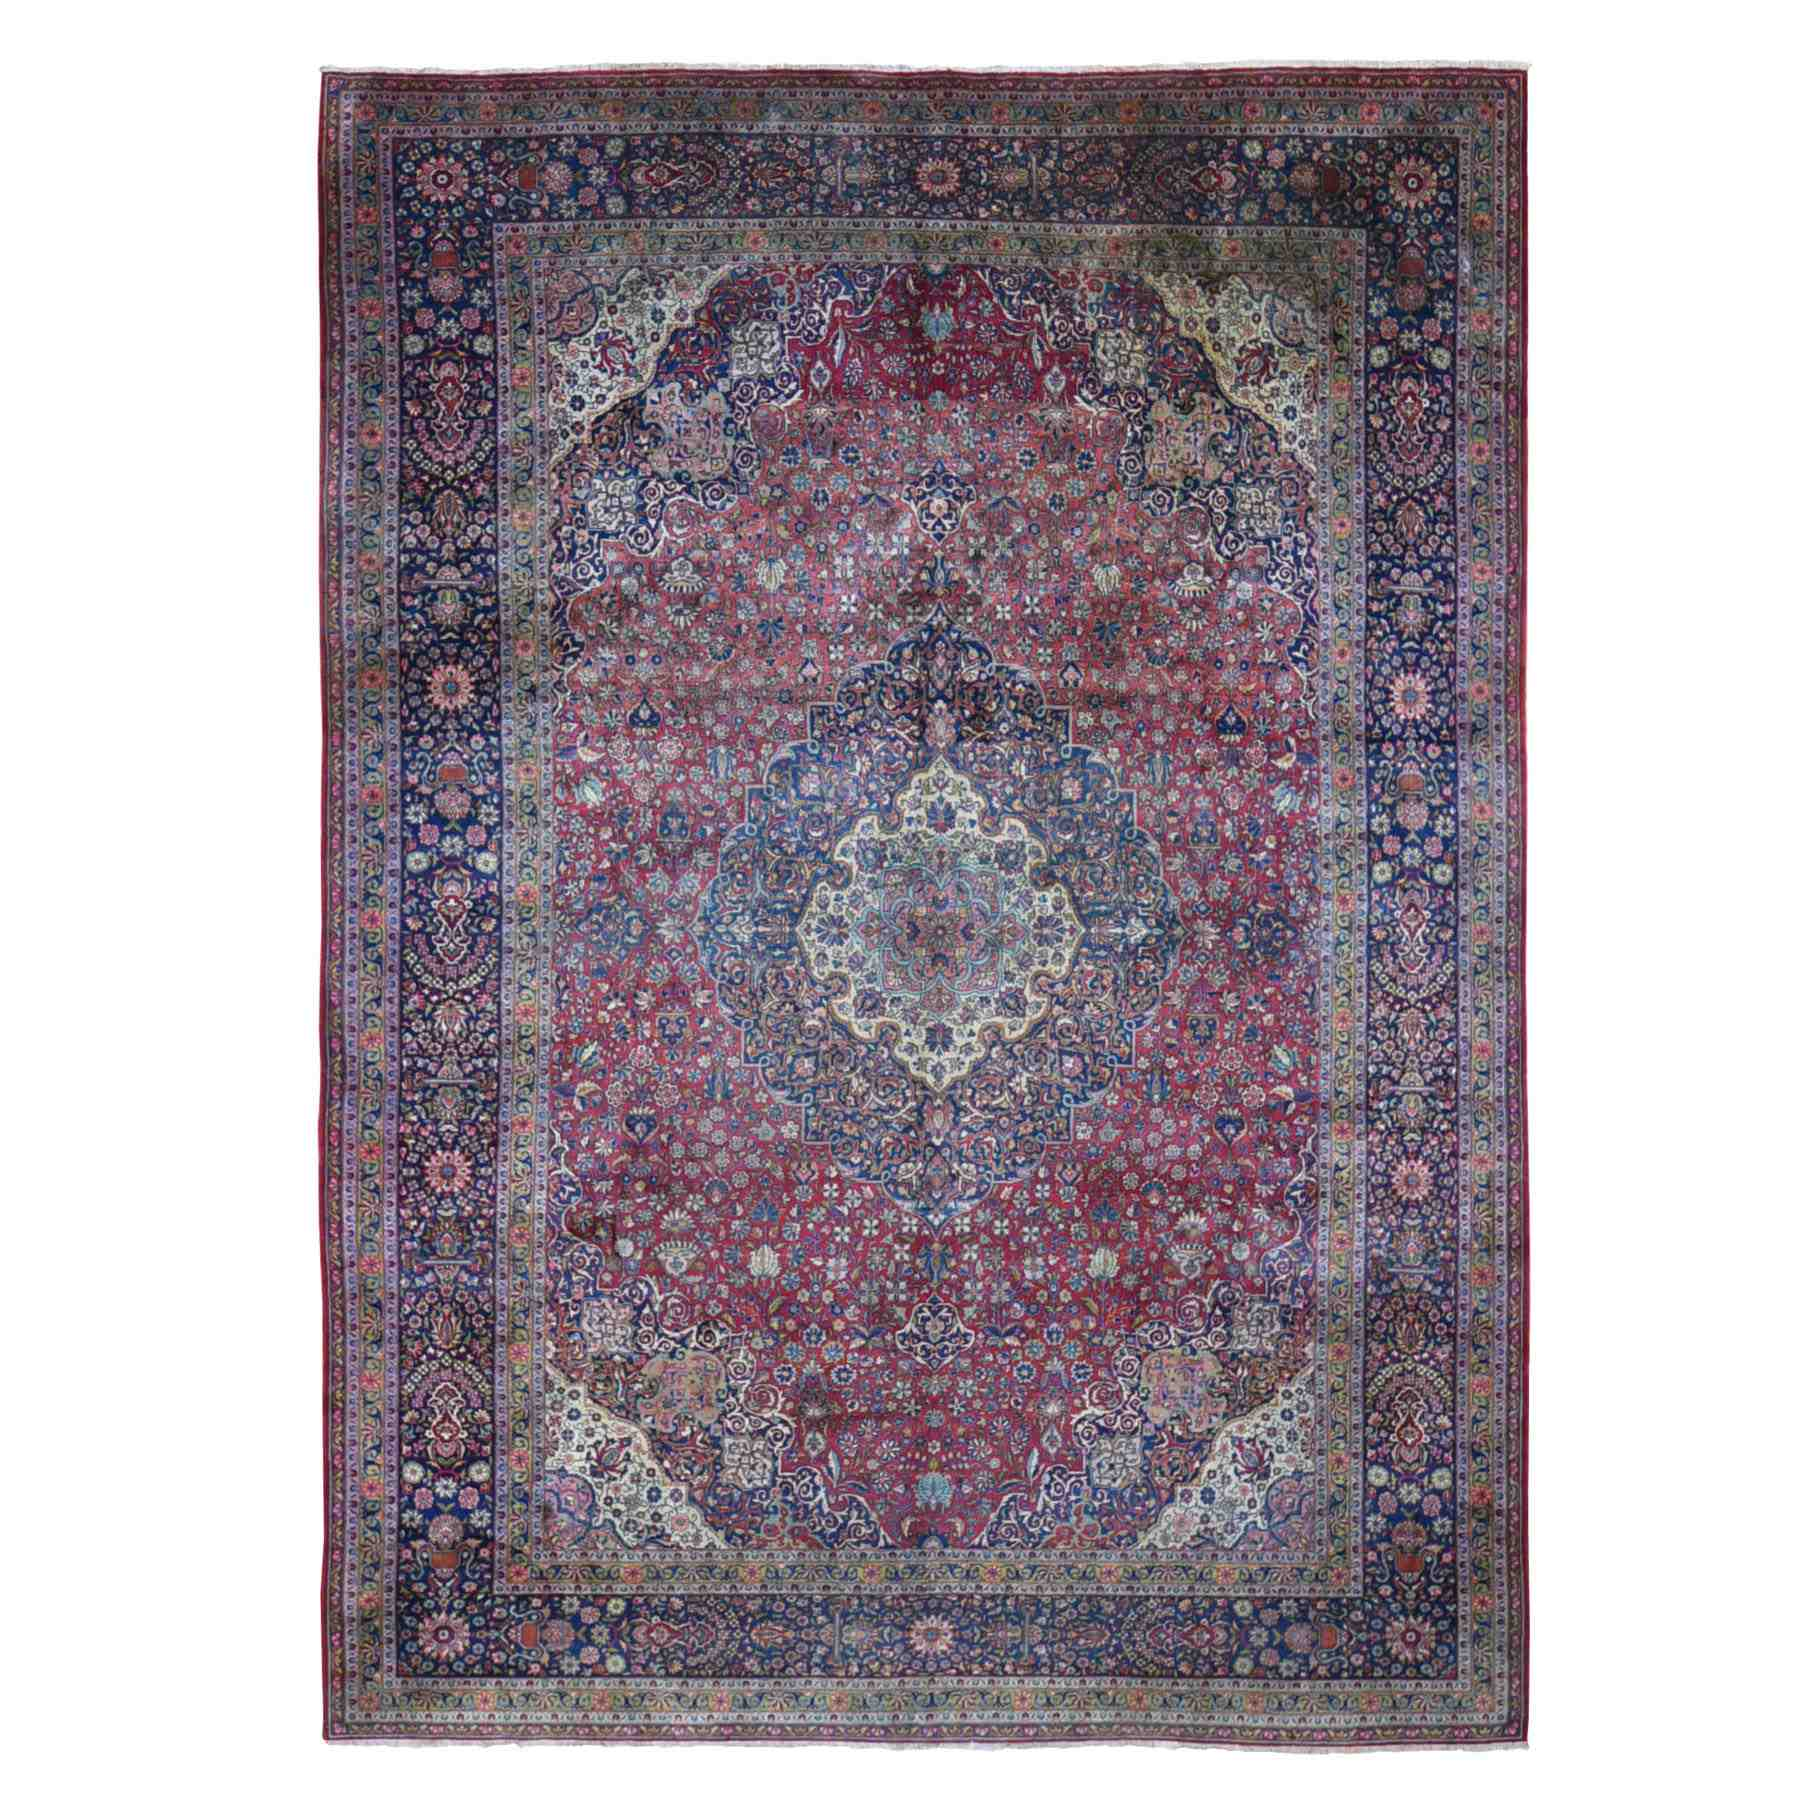 Antique Collection Hand Knotted Red Rug No: 01118580